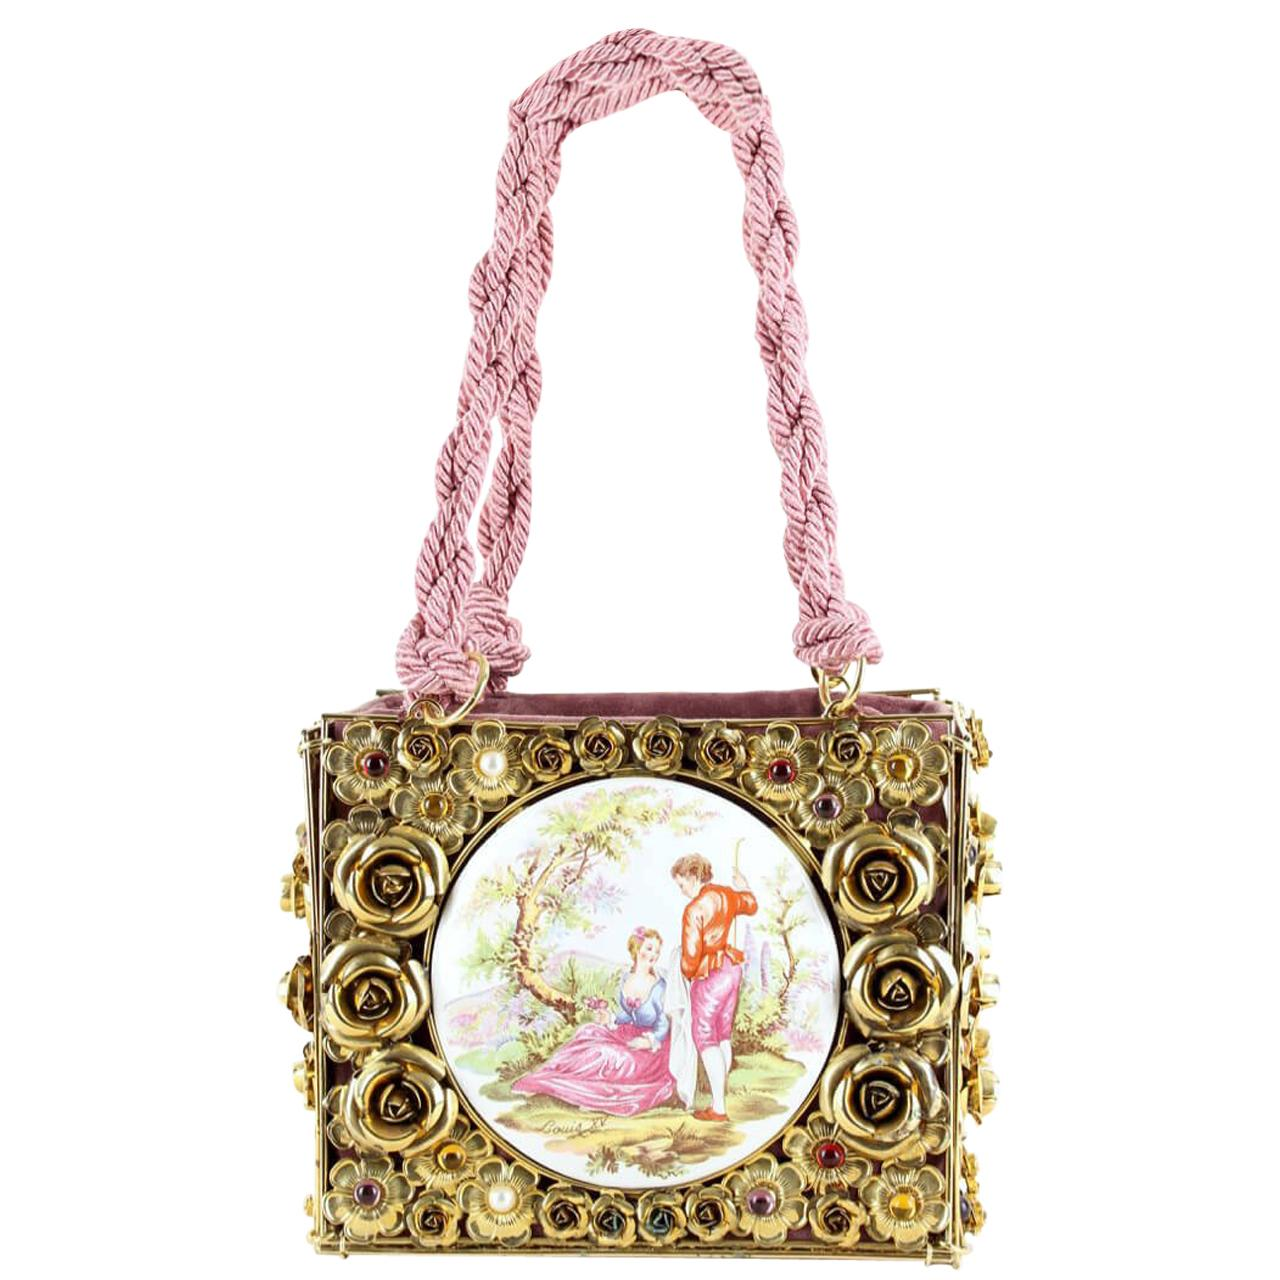 DOLCE & GABBANA F/W 1992 Documented Couture Runway Floral Metal & Porcelain Bag